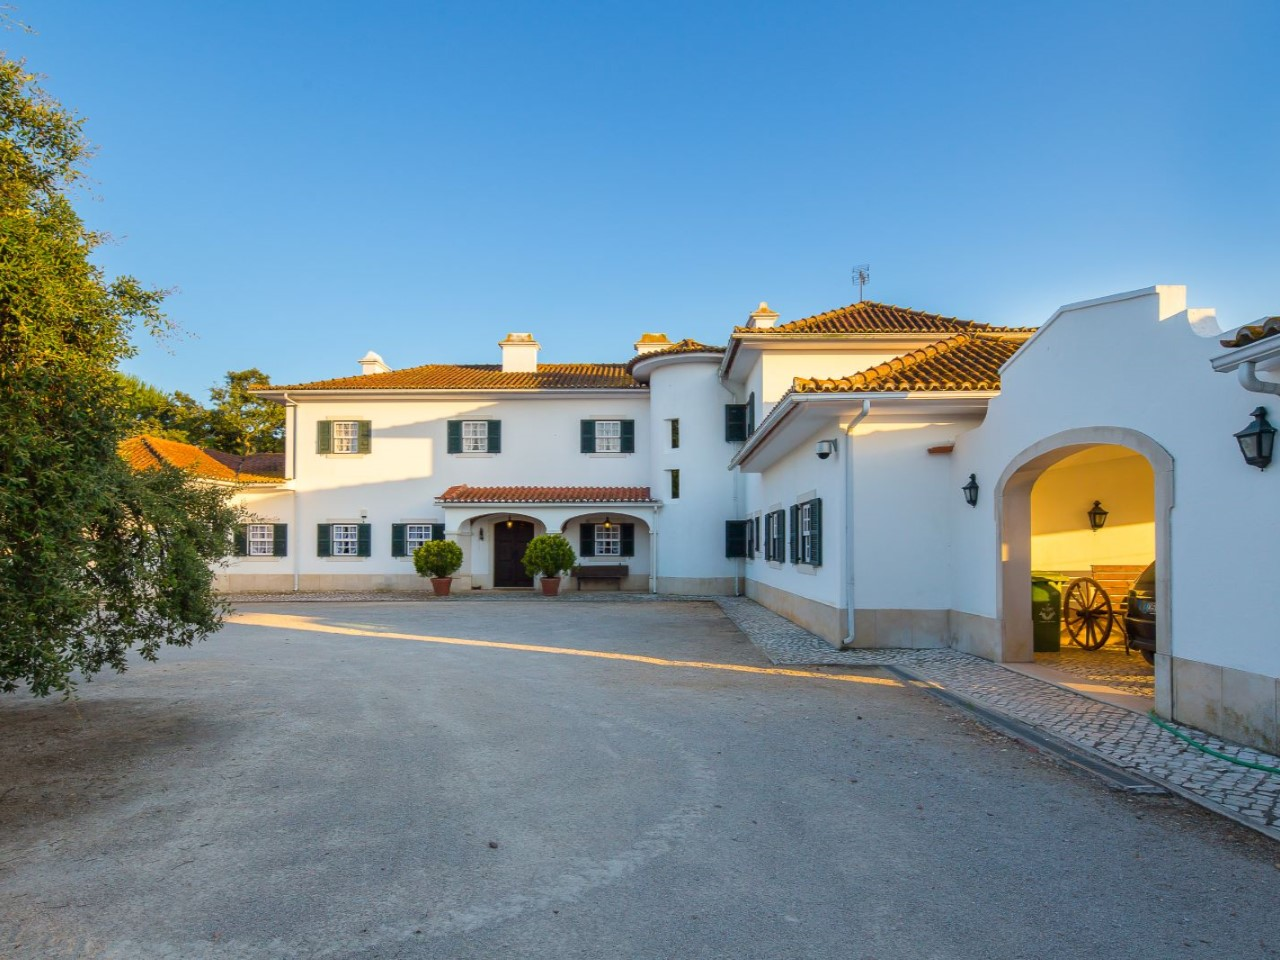 HOMESTEAD 32 ha AND 8 ROOMS, FOR SALE IN SANTO ESTÊVÃO